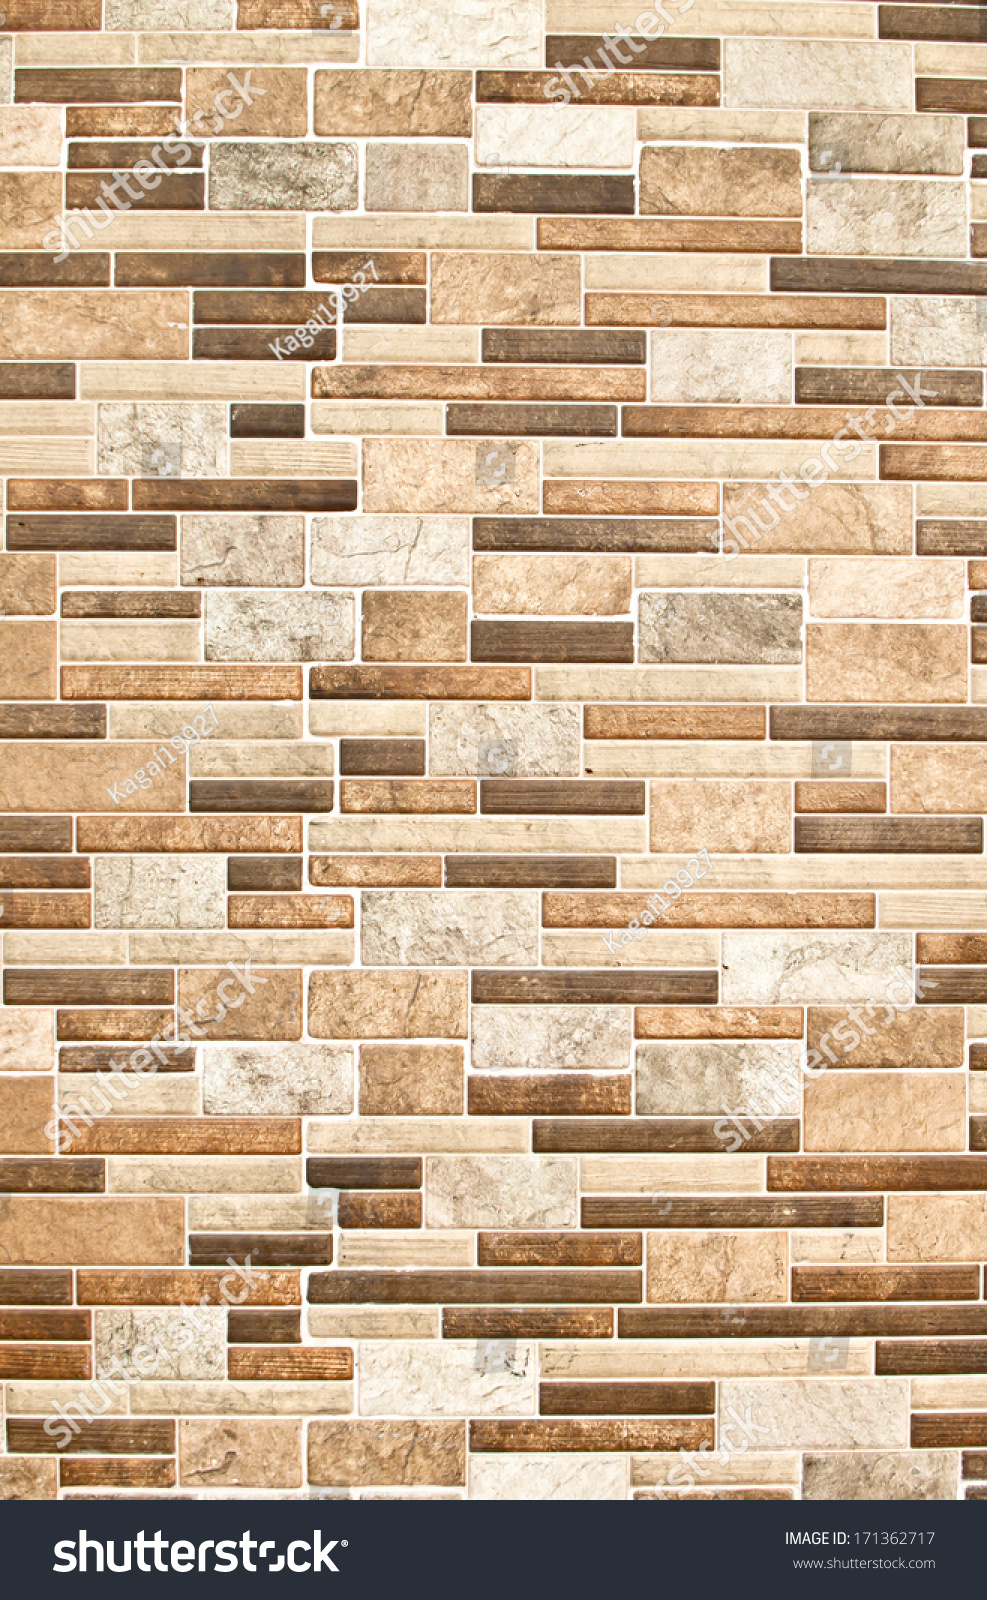 Modern ceramic tile wall construction wall stock photo for Modern ceramic tile